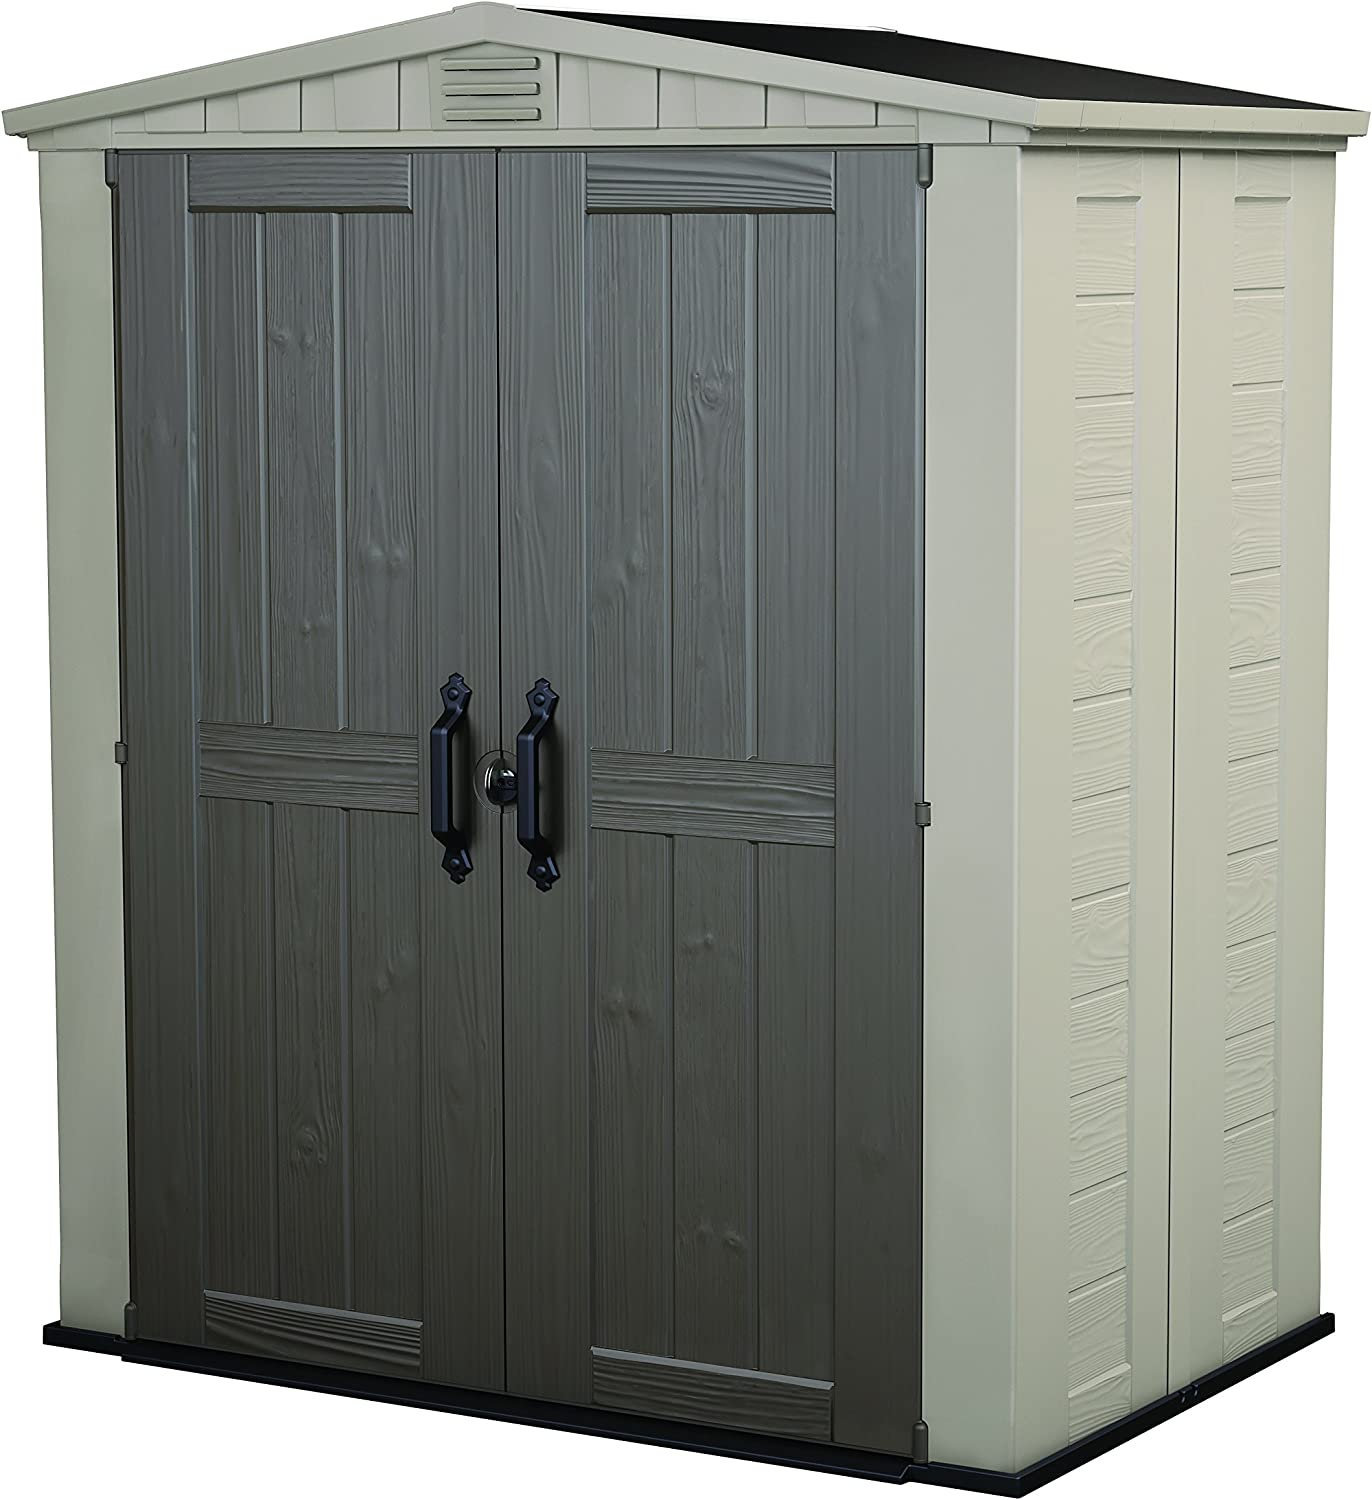 Keter Factor 6x3 Outdoor Storage Shed